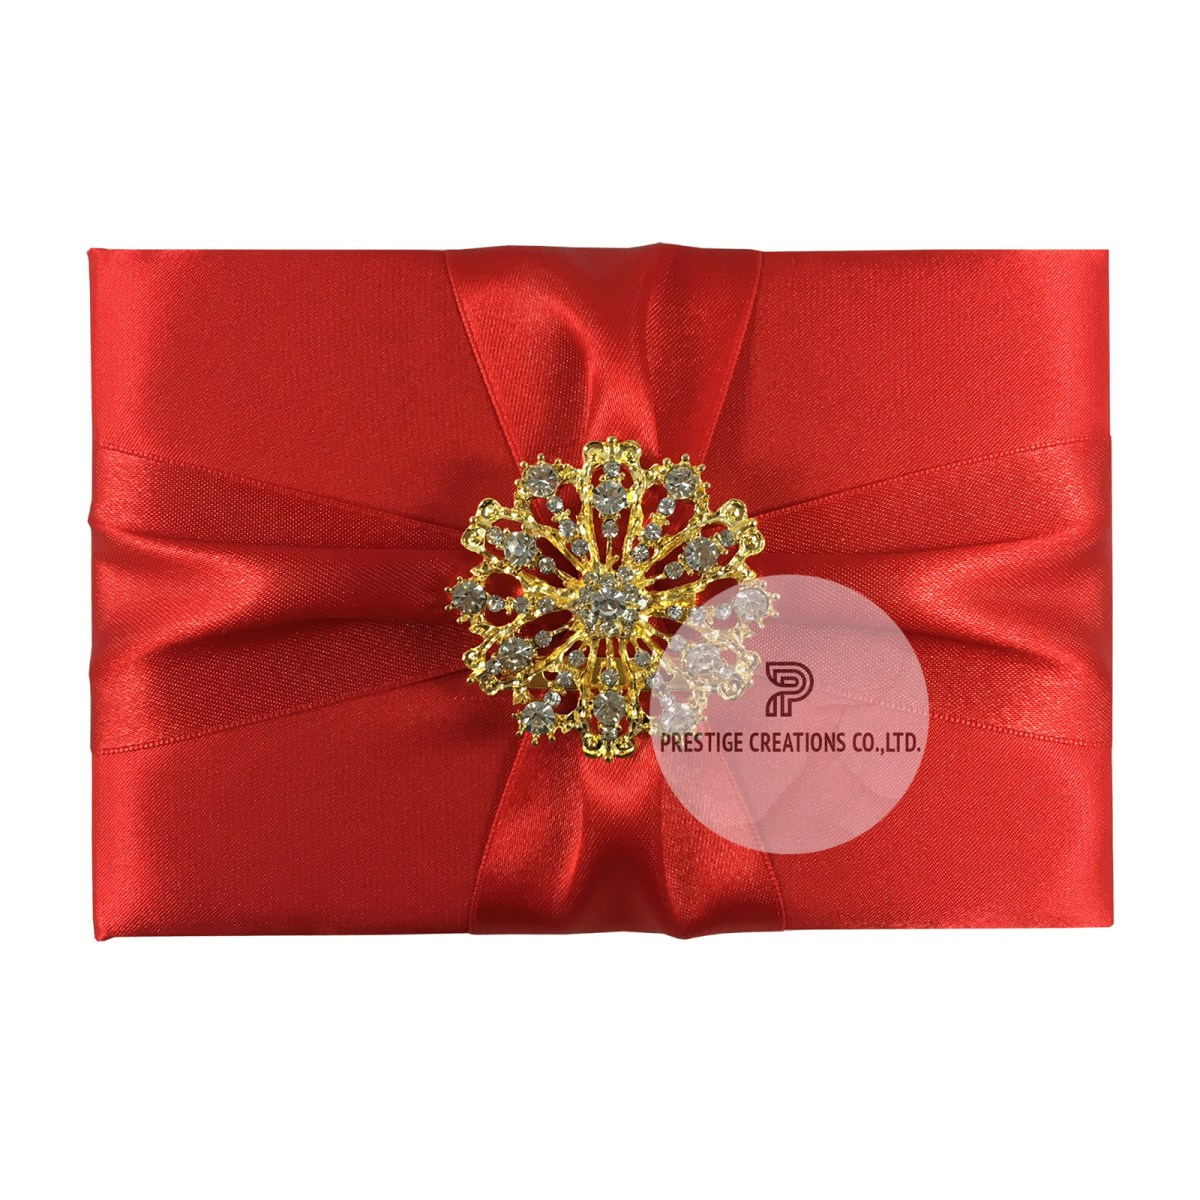 Red Wedding Invitations Red Pocket Fold Invitation For Luxury Wedding Events Featuring Gold Brooch Embellishment